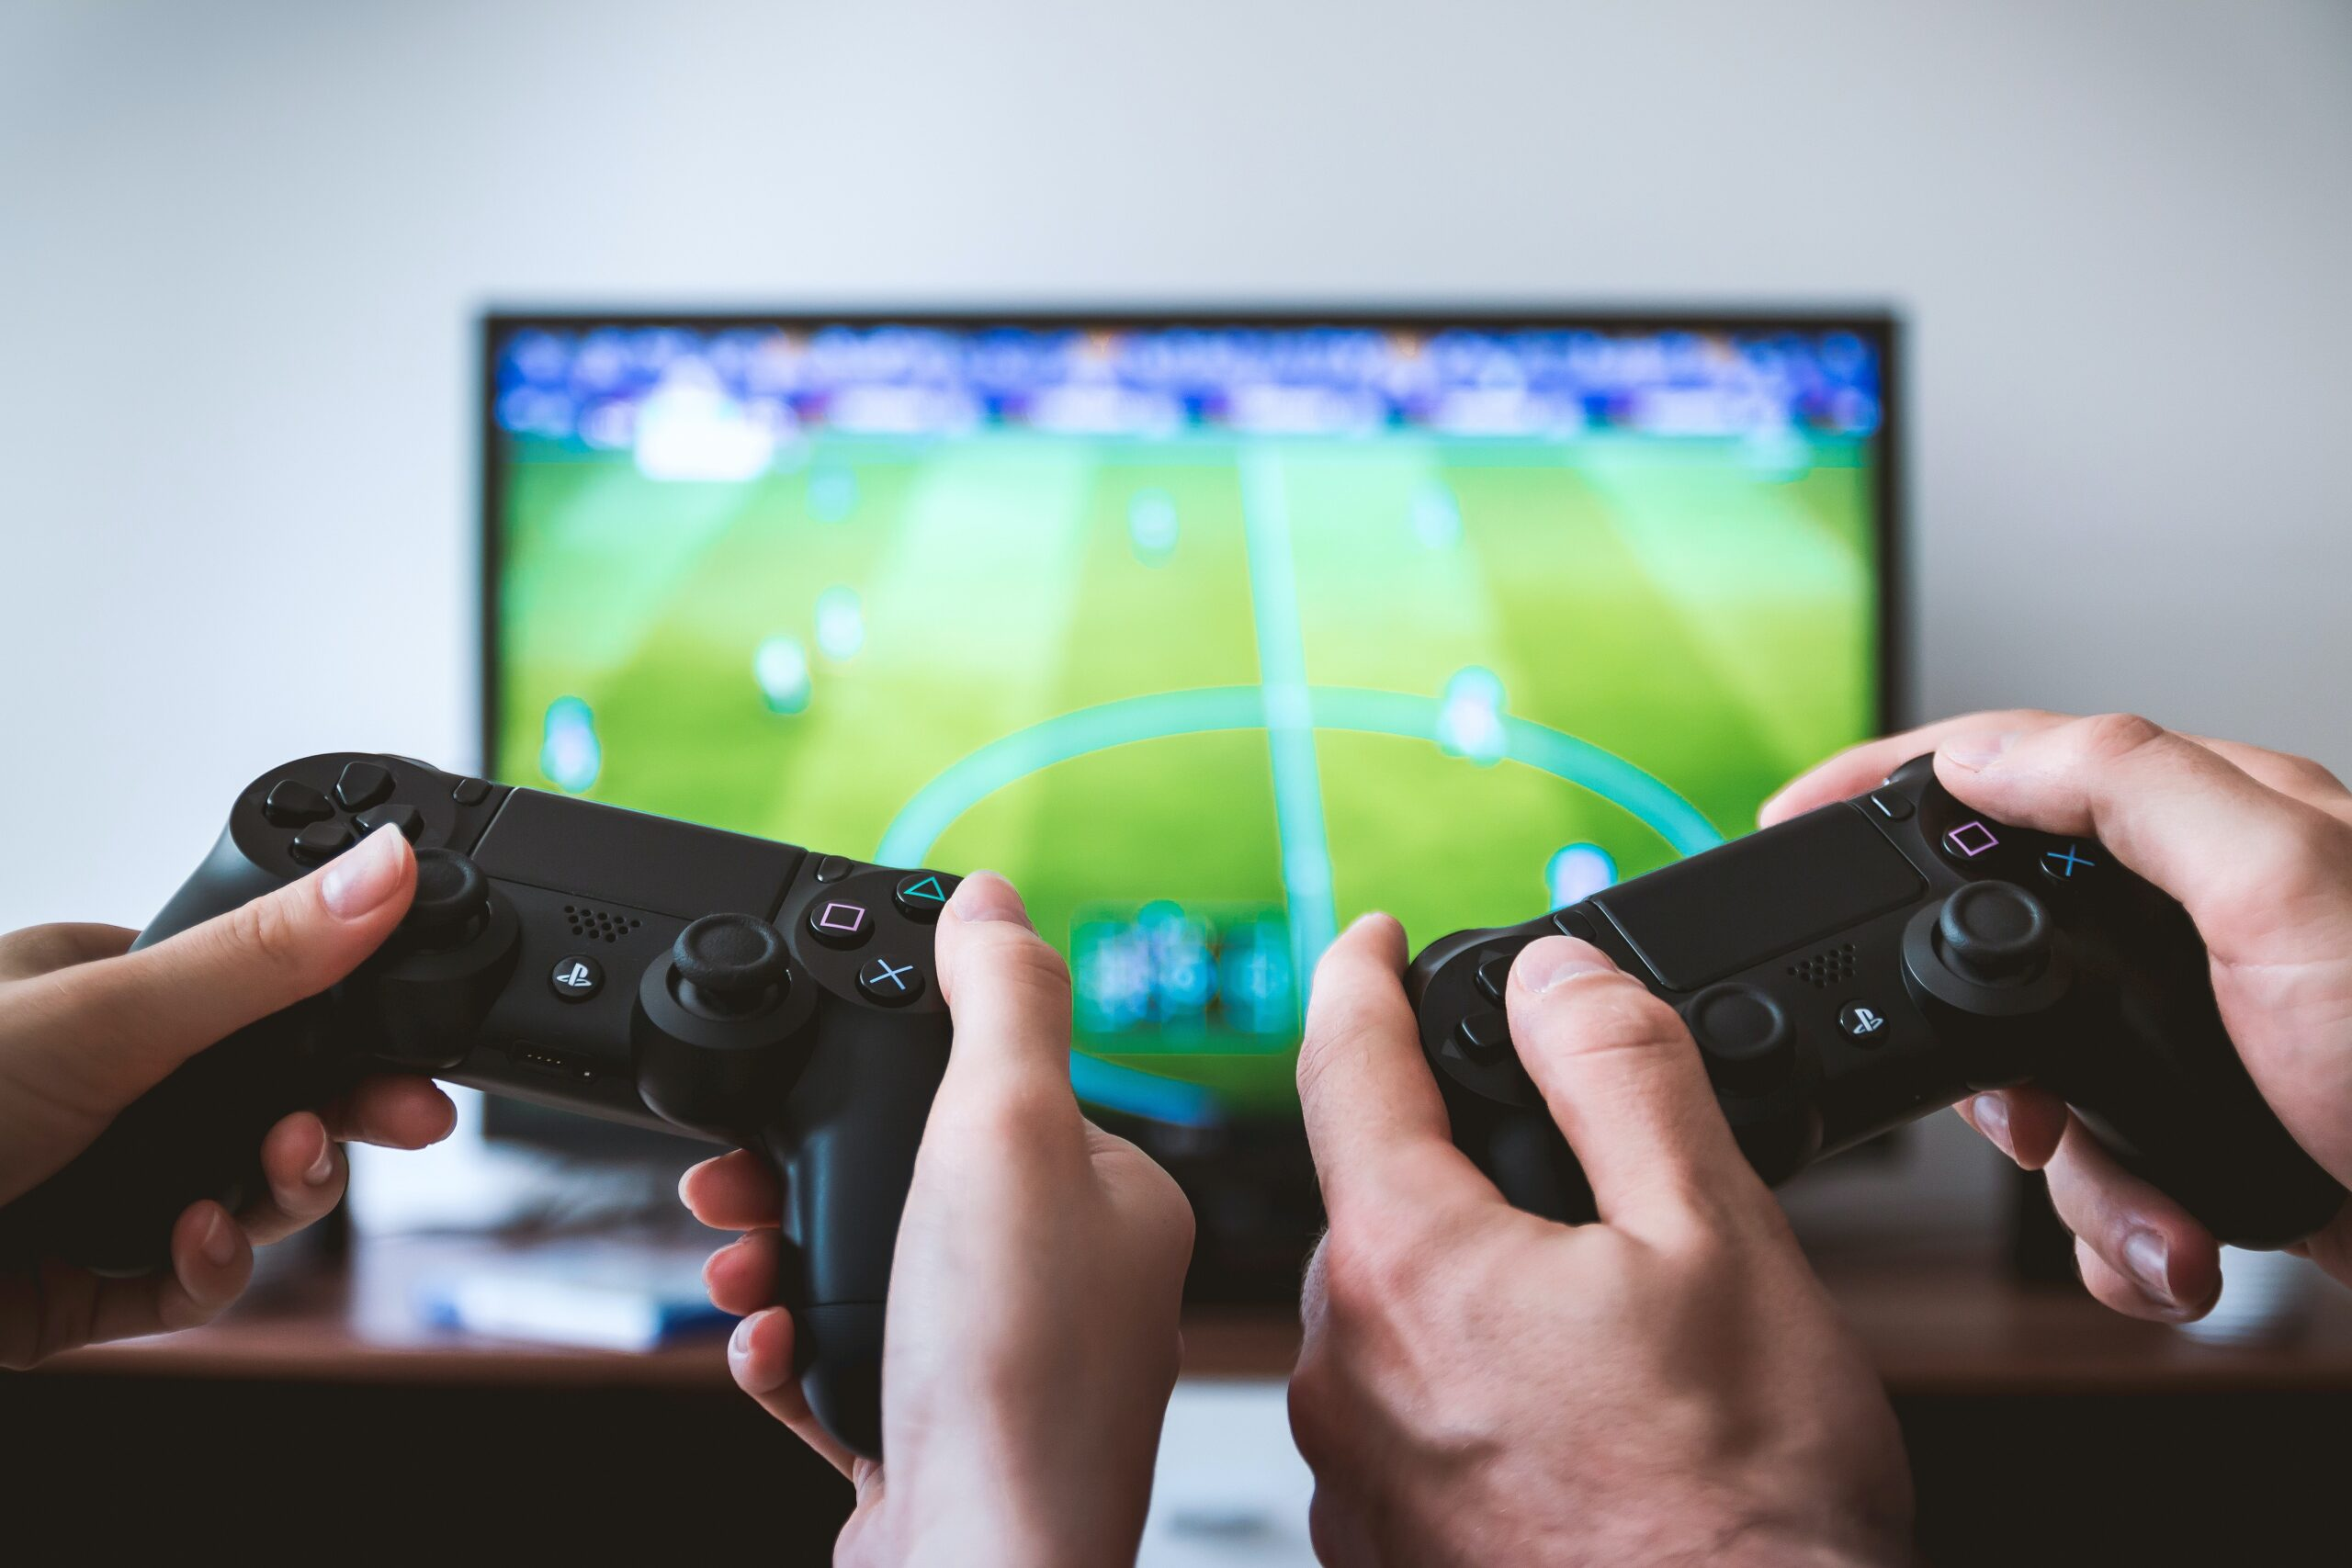 Two hands holding video game controllers